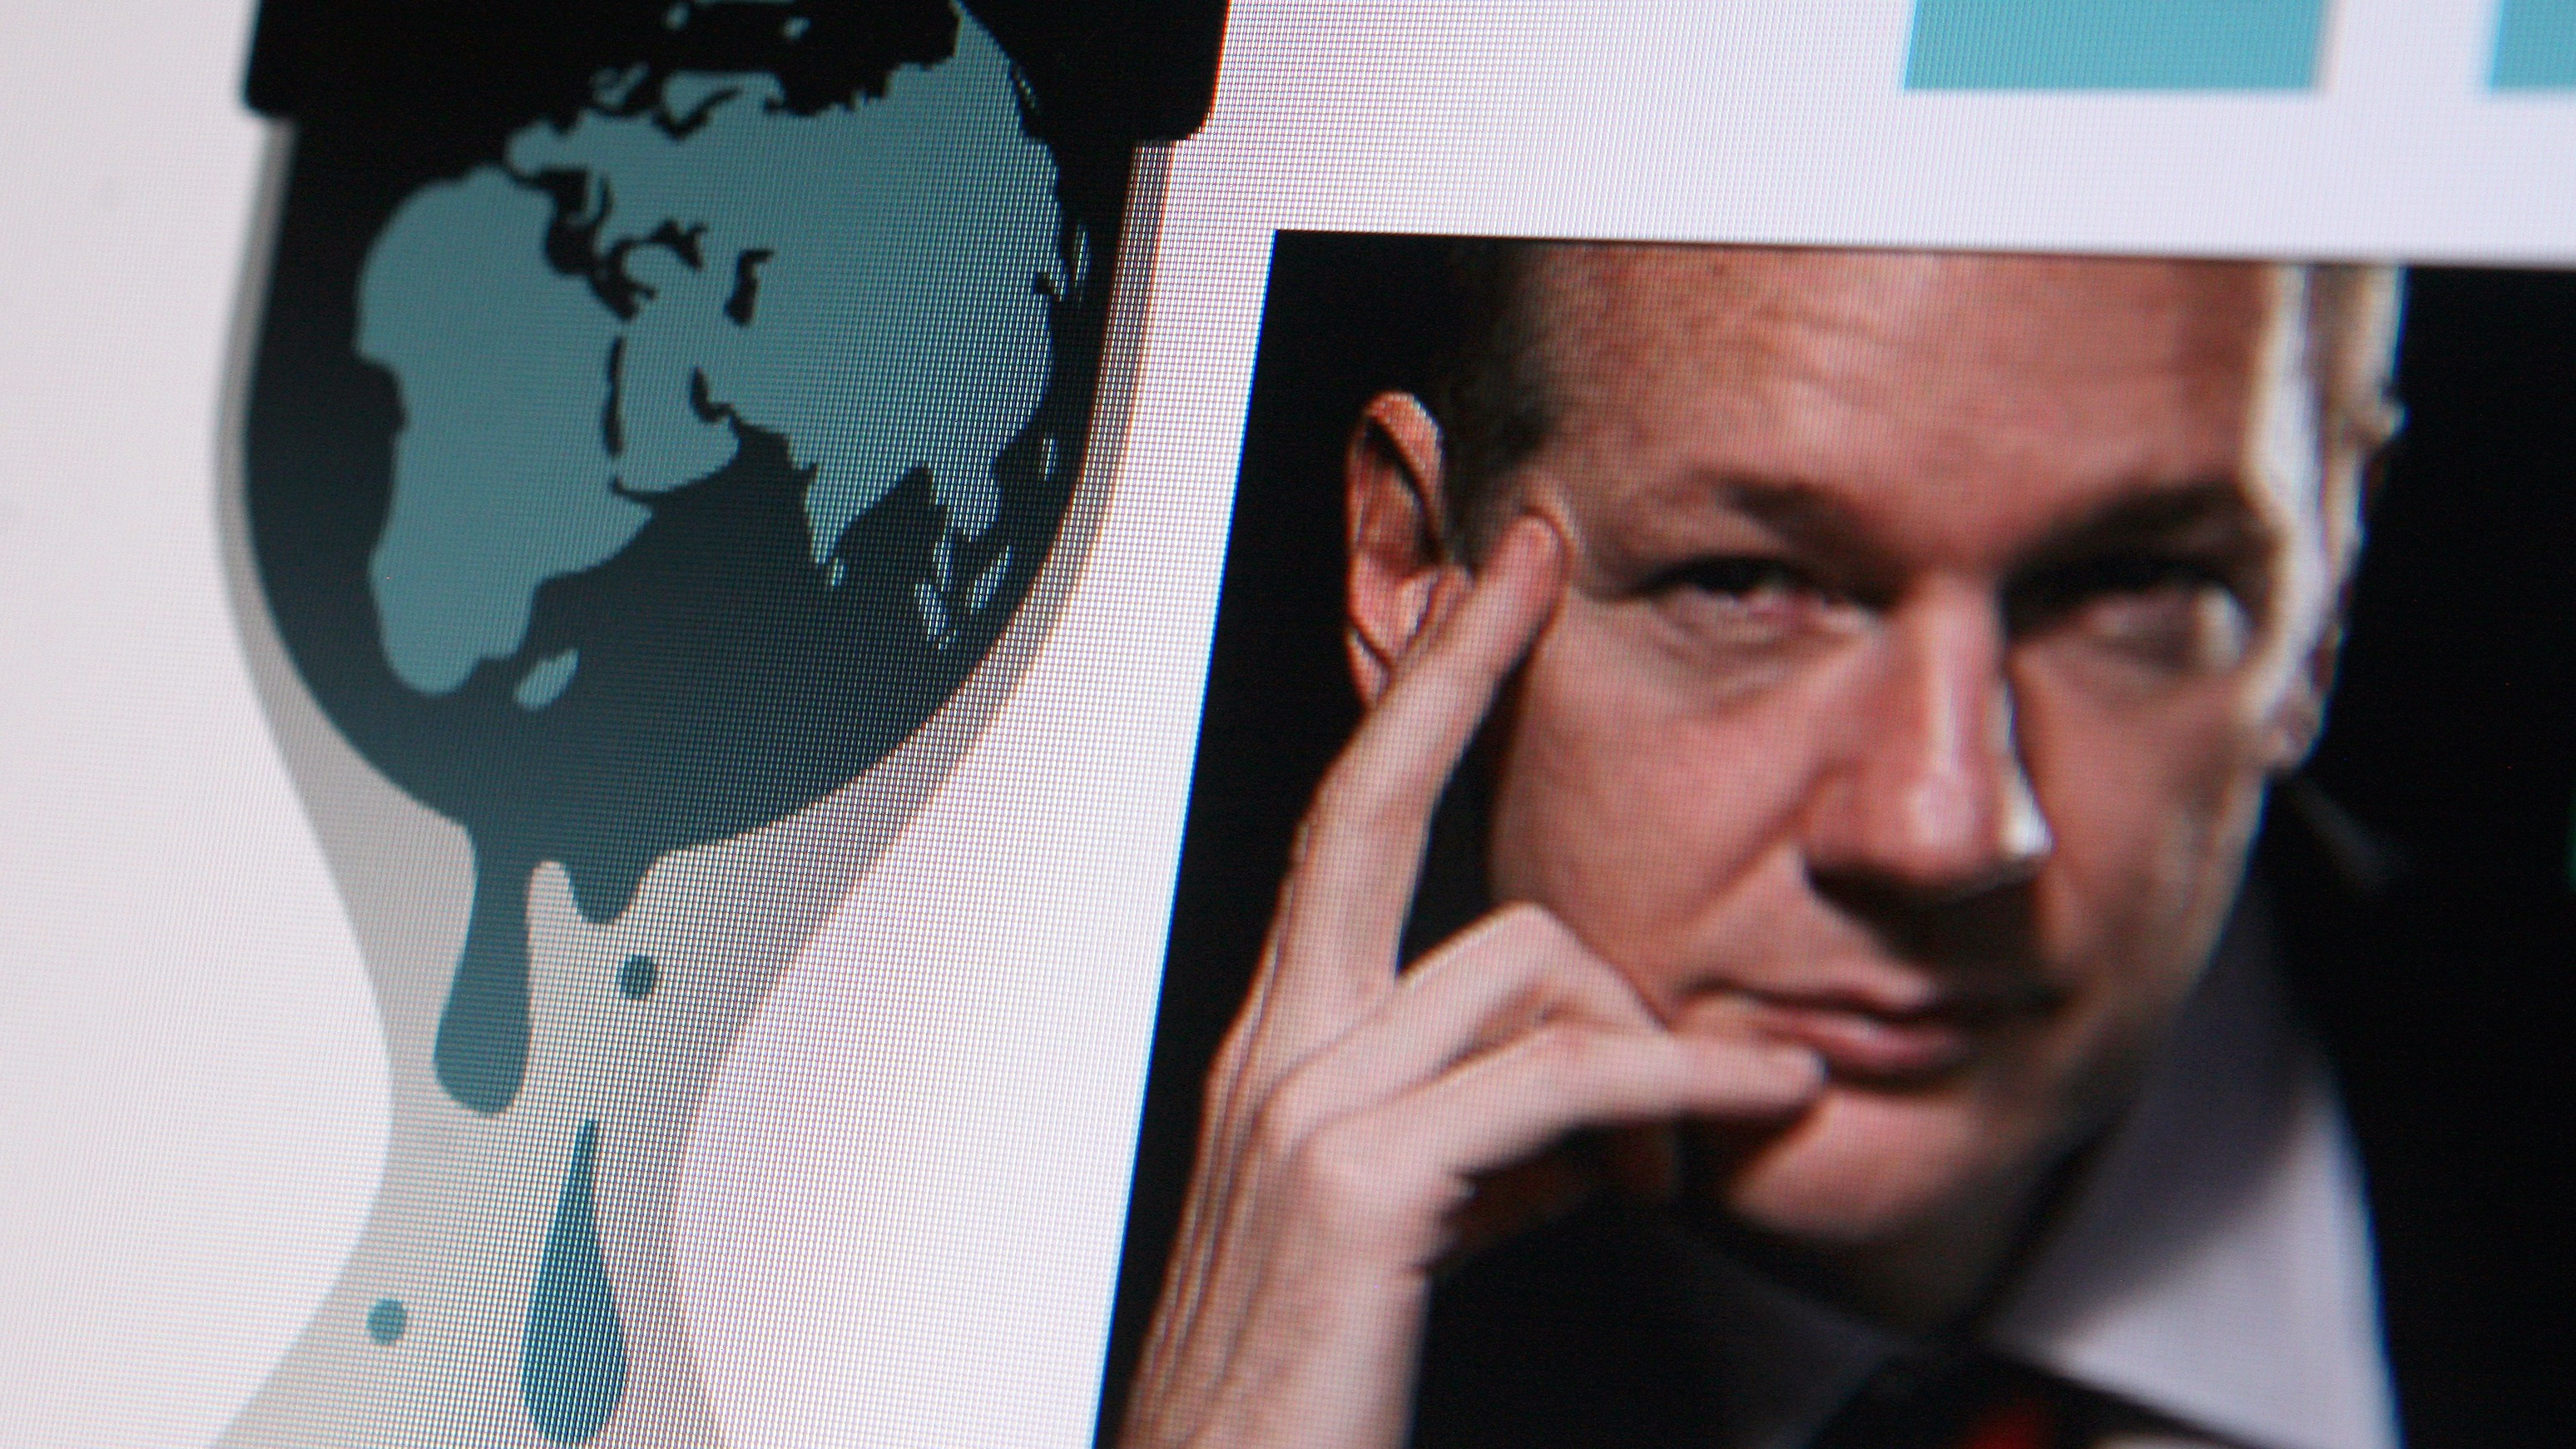 WikiLeaks Claims 'State Actor' Has Cut Off Assange's Internet